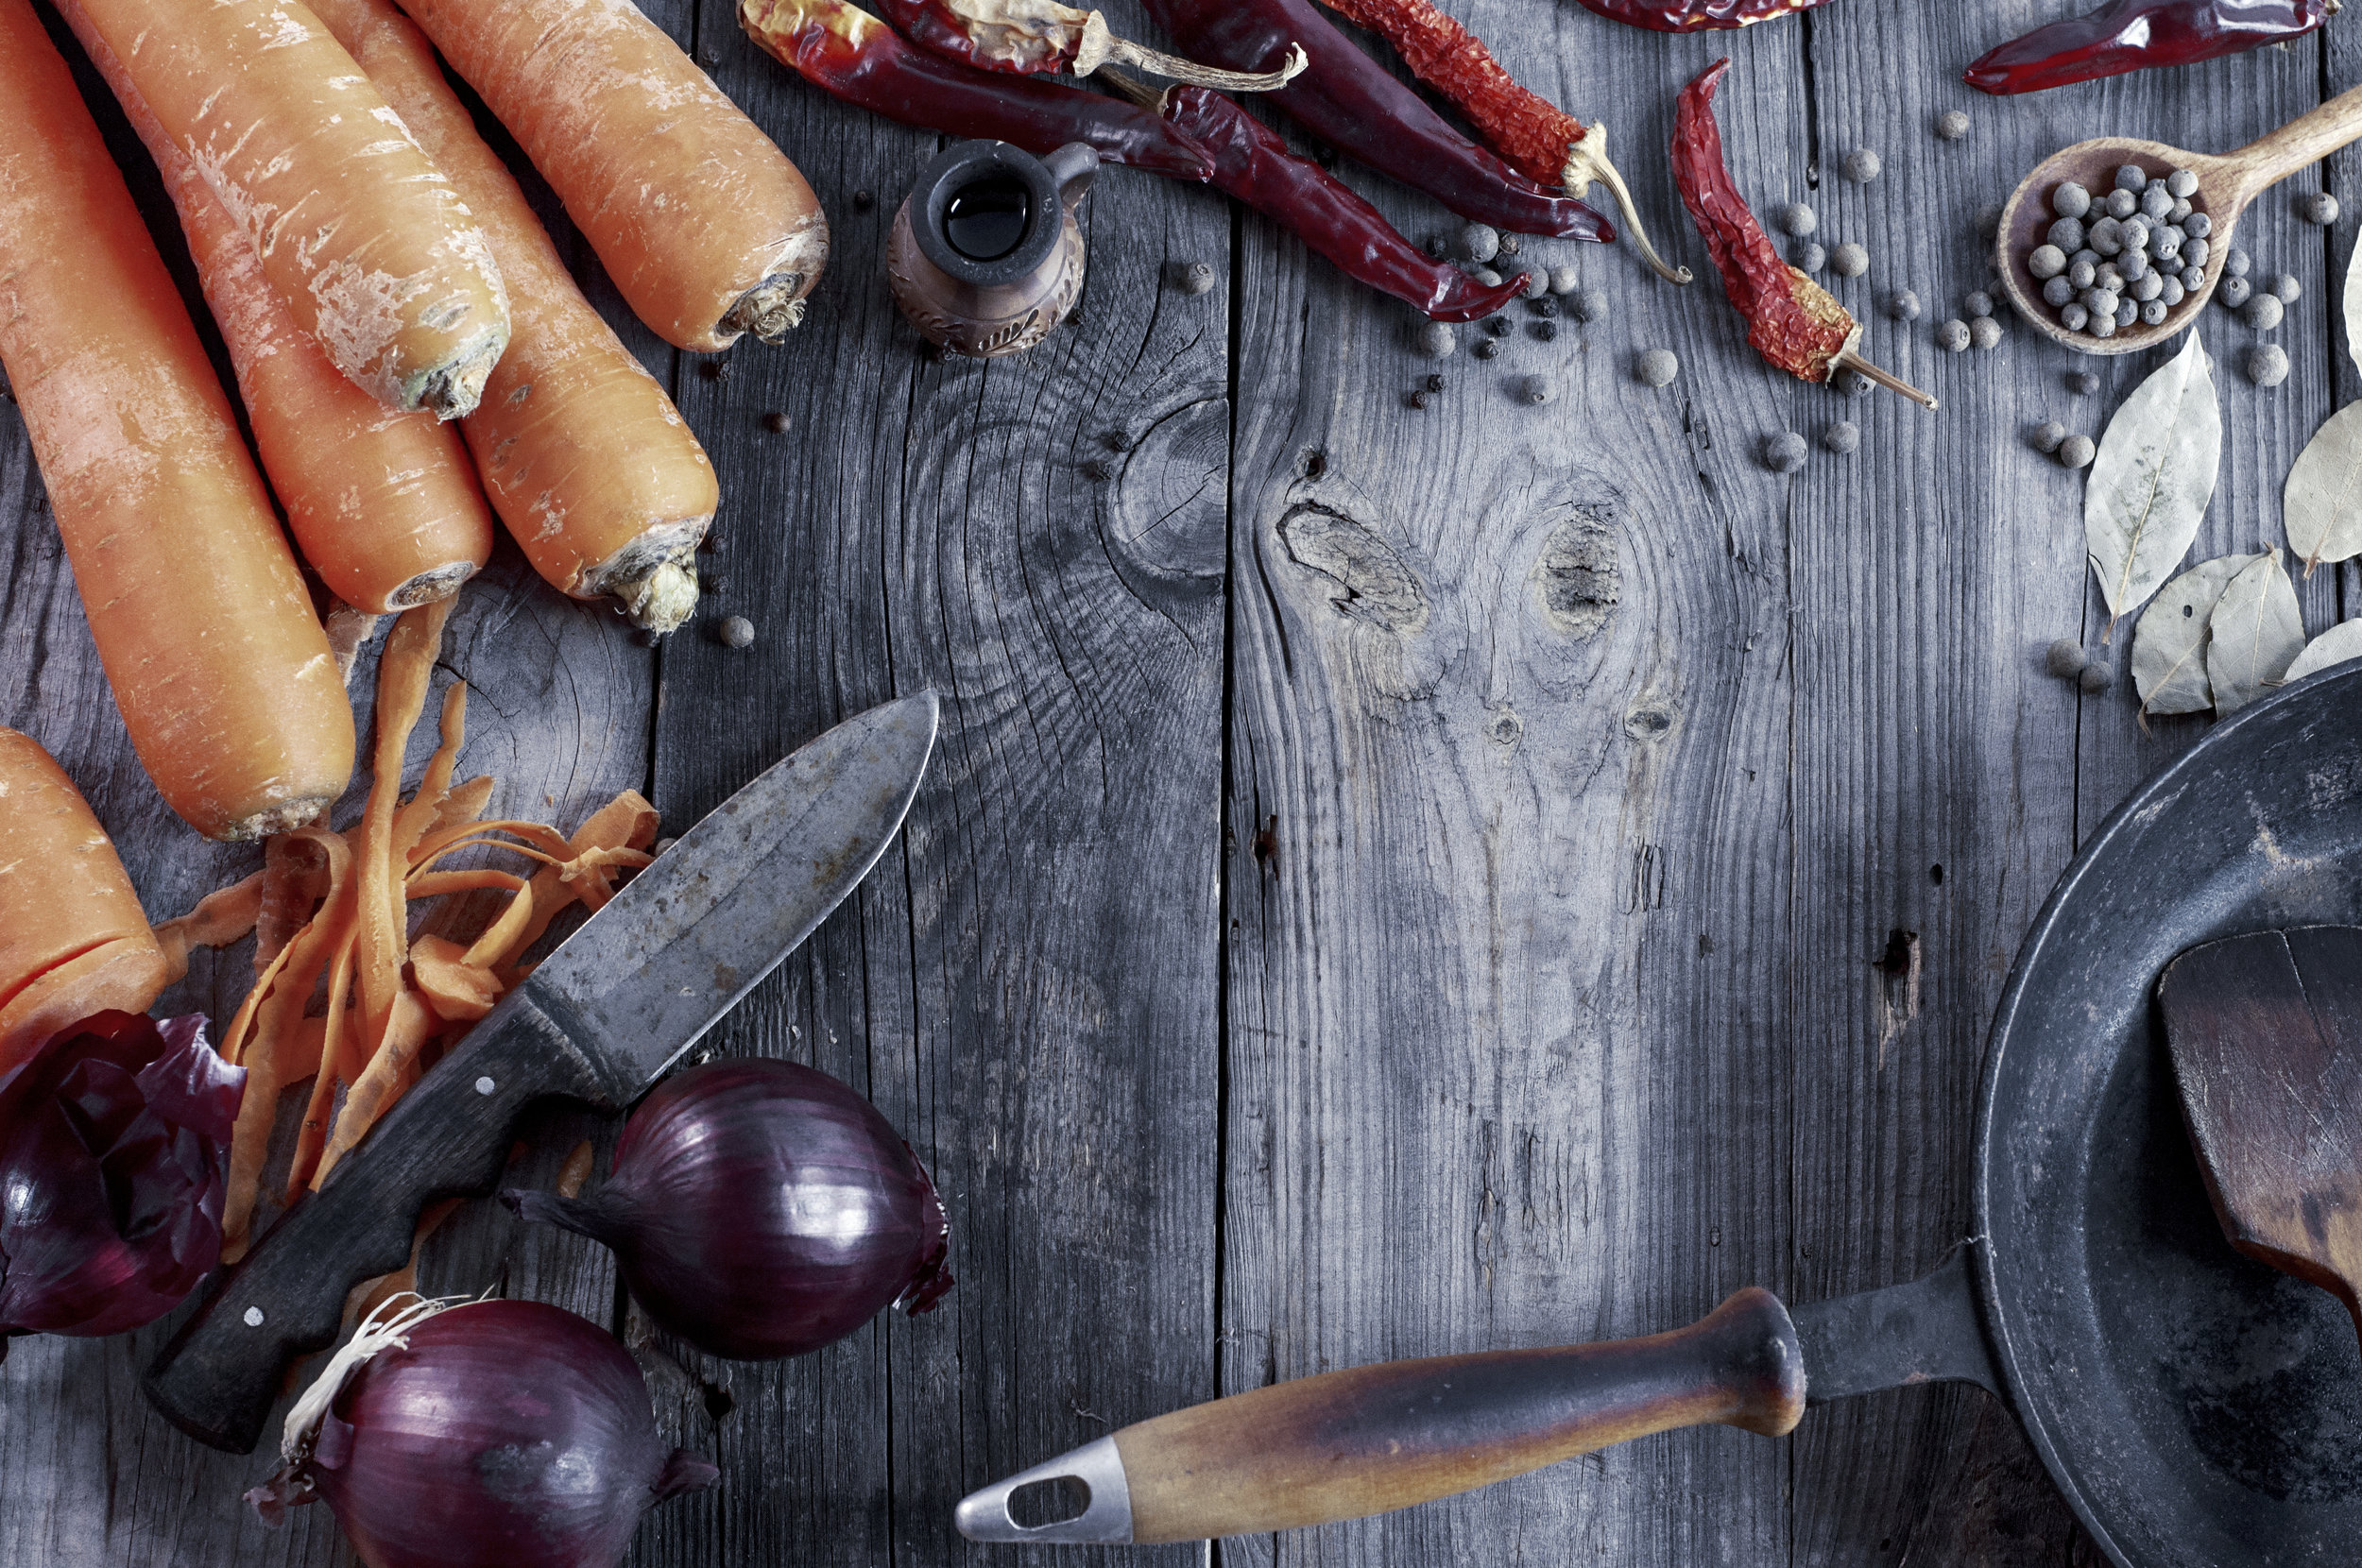 cooking workshops - Learn how to create healthy, easy snacks and meals for your lifestyle.